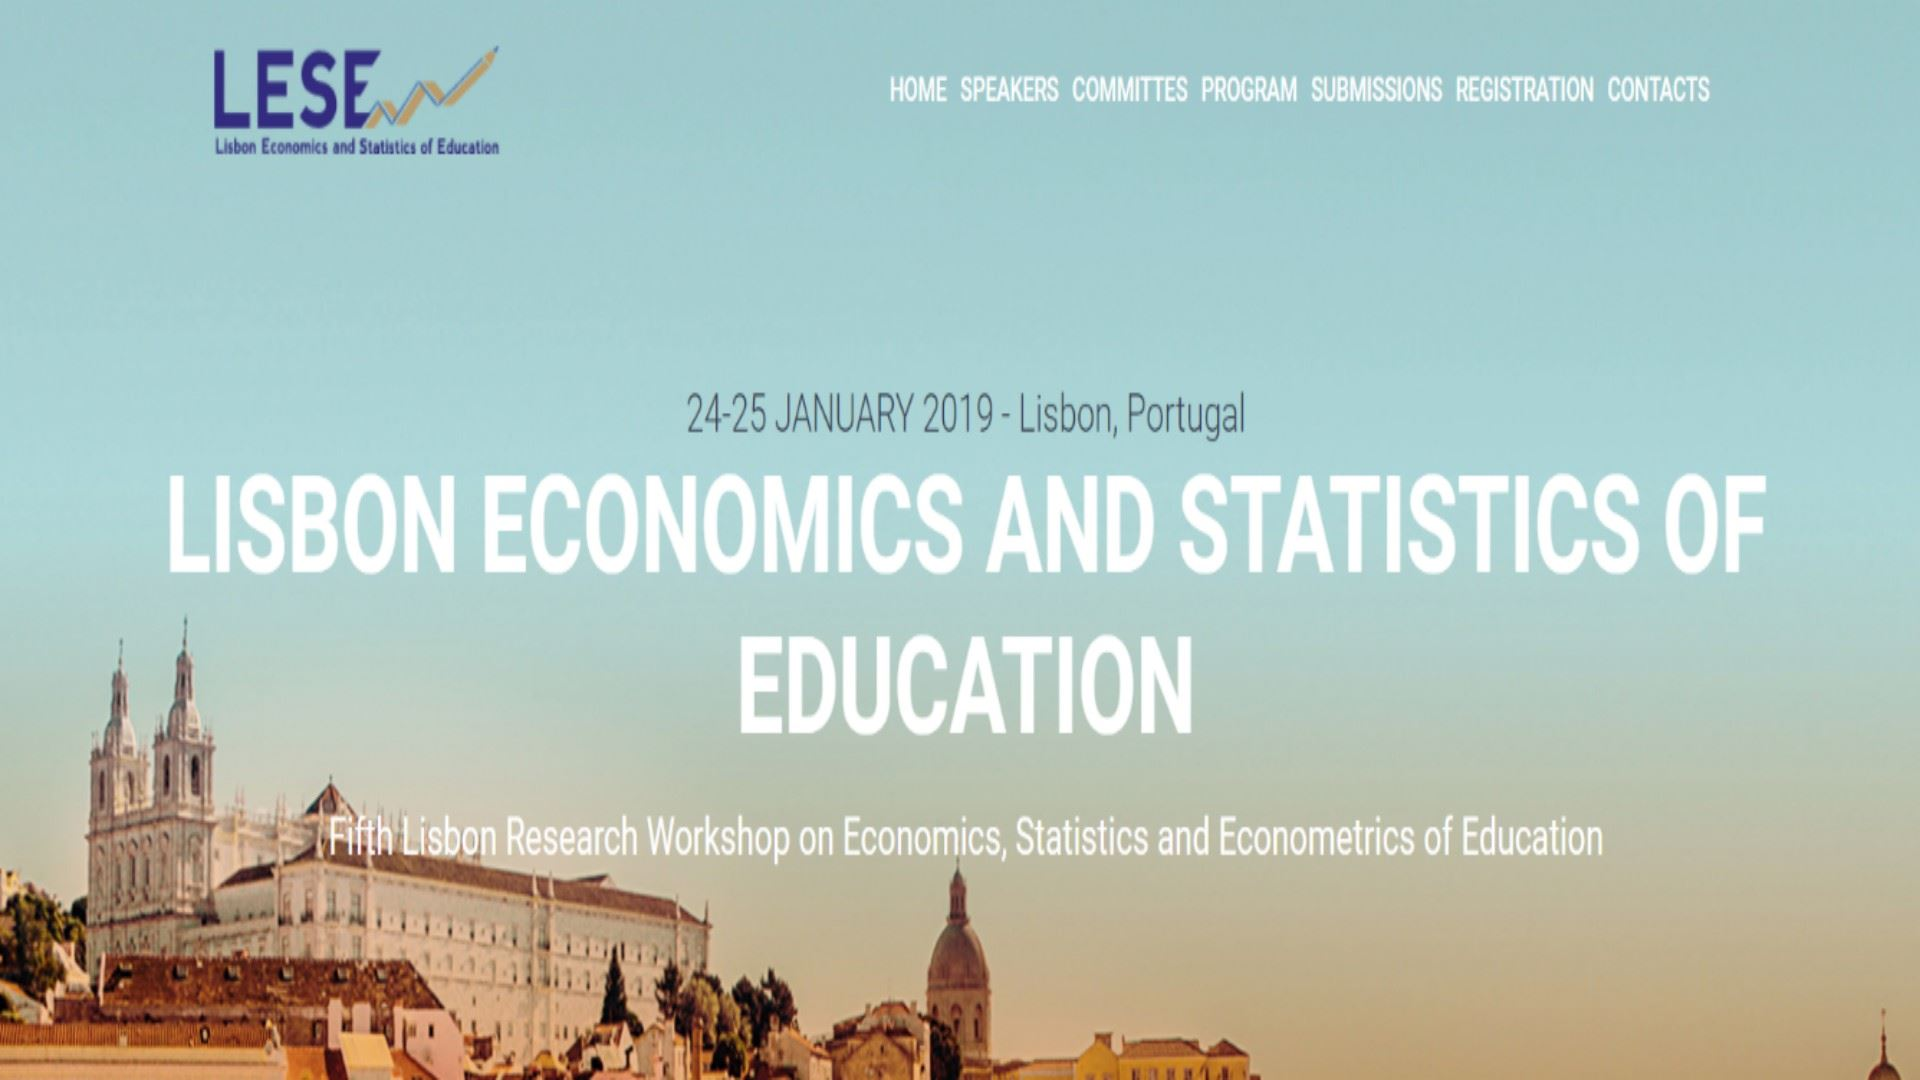 LESE - Lisbon Economics and Statistics of Education